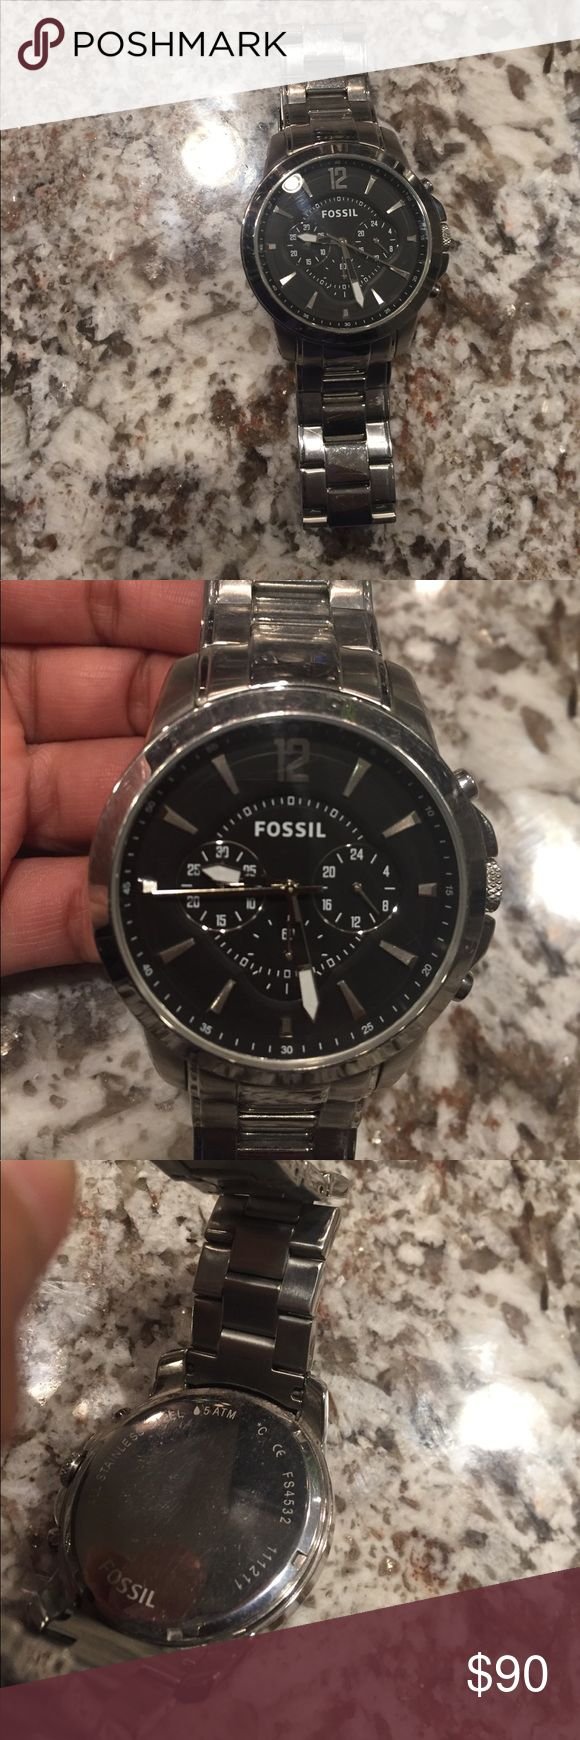 Men's Fossil Watch Stainless steel Fossil Accessories Watches